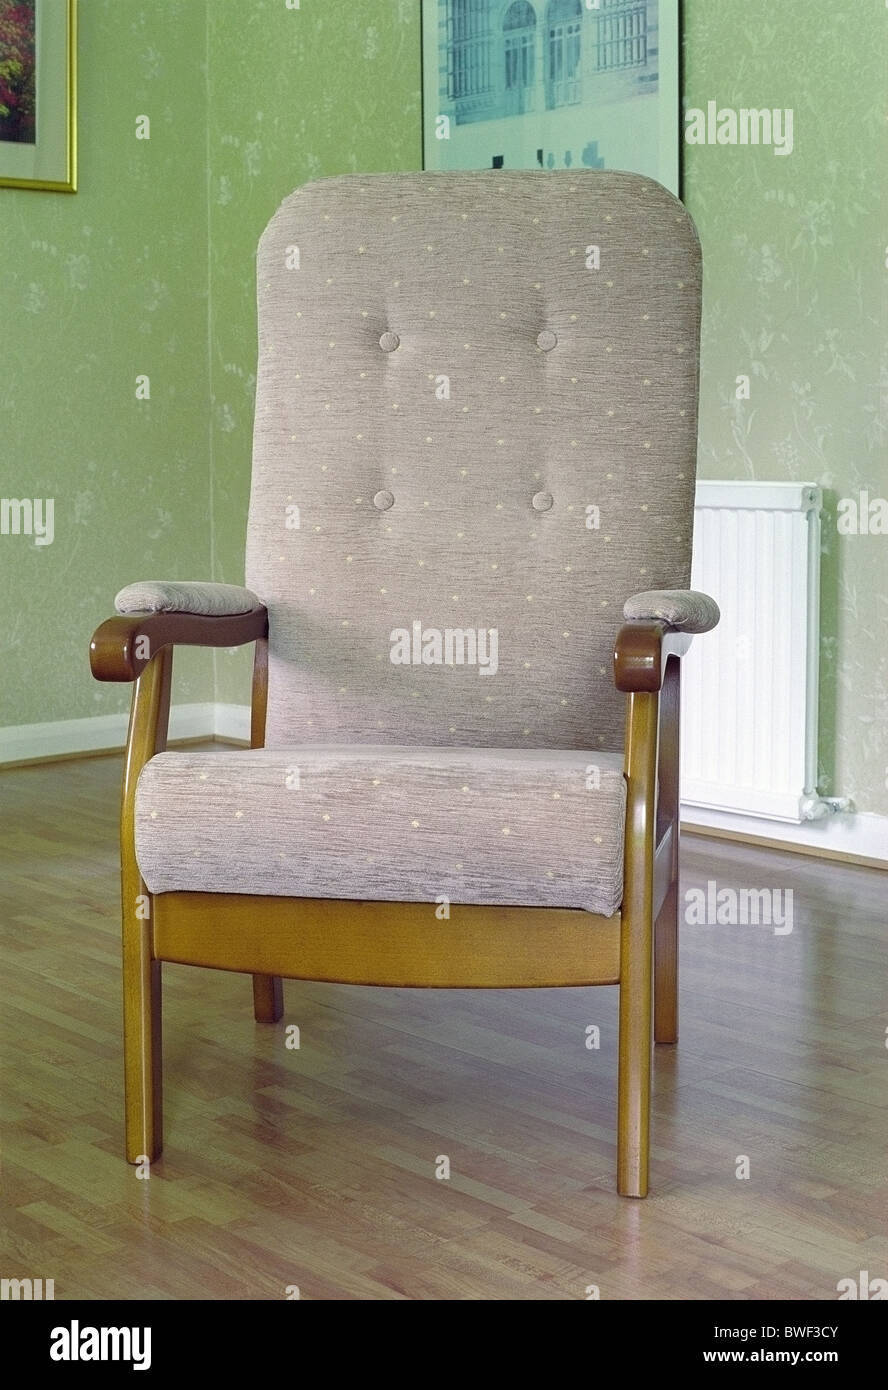 High Backed Armchair in a Home Setting - Stock Image